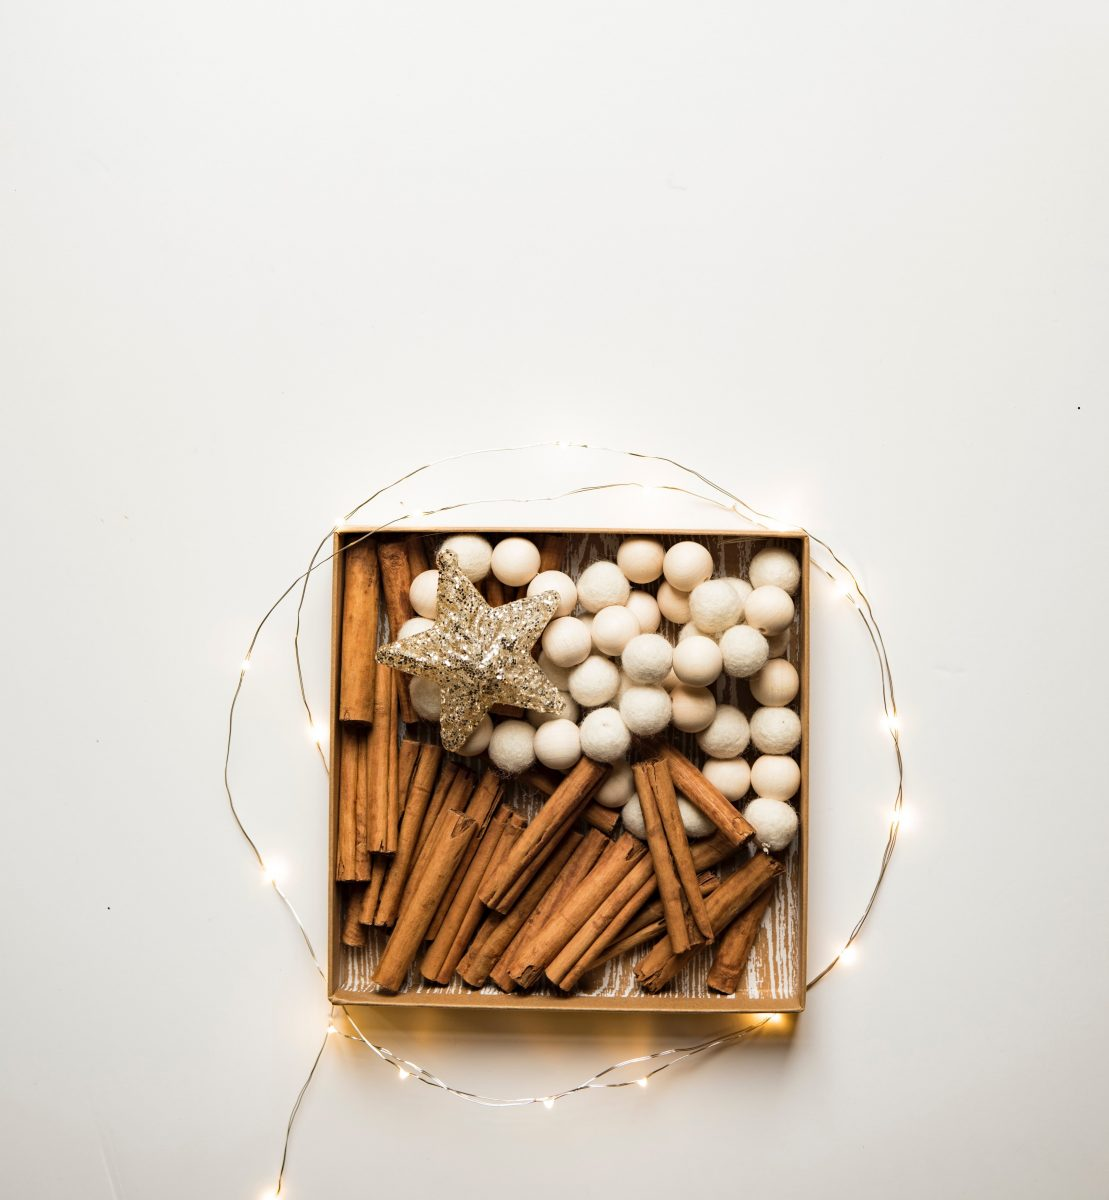 Cinnamon: Cinnamon sticks in a display with fairy lights and decorative objects